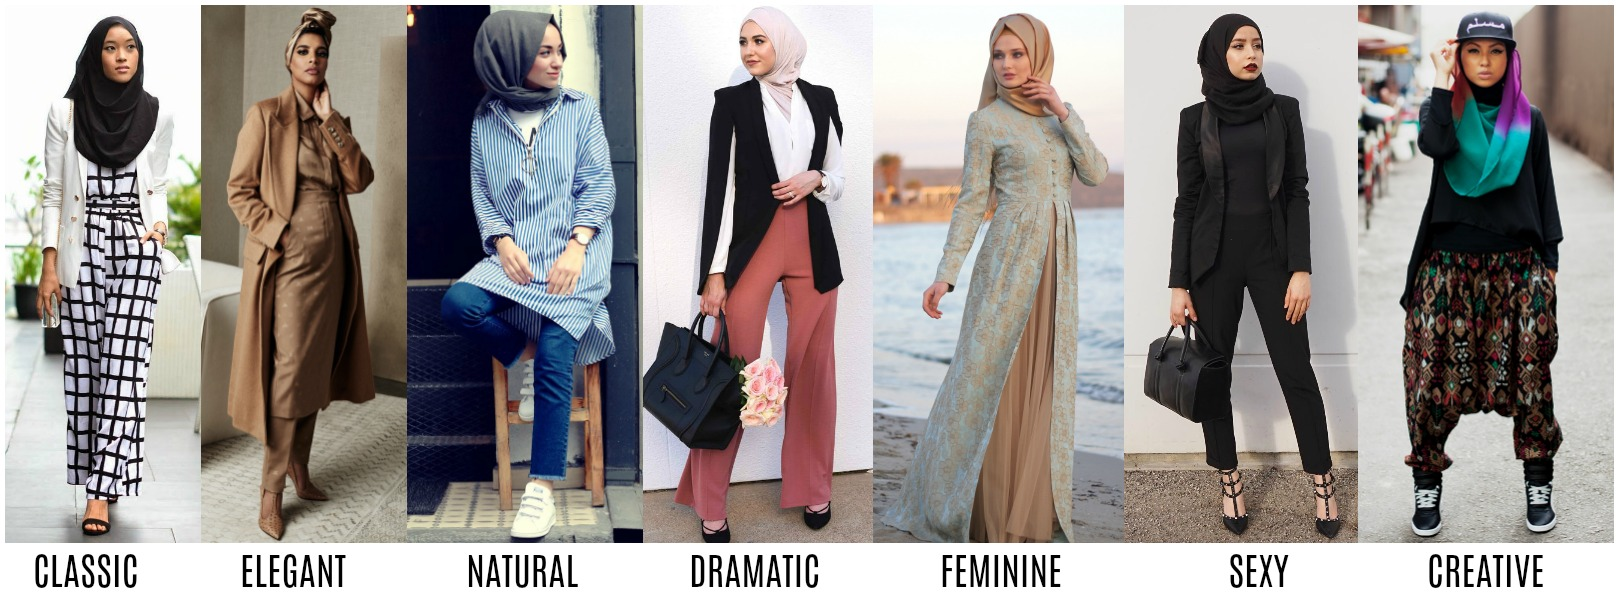 Whats Your Style Personality, Image Innovators, Ann Reinten, Style Clinic, Womens Style, Islamic Personal Style Expression